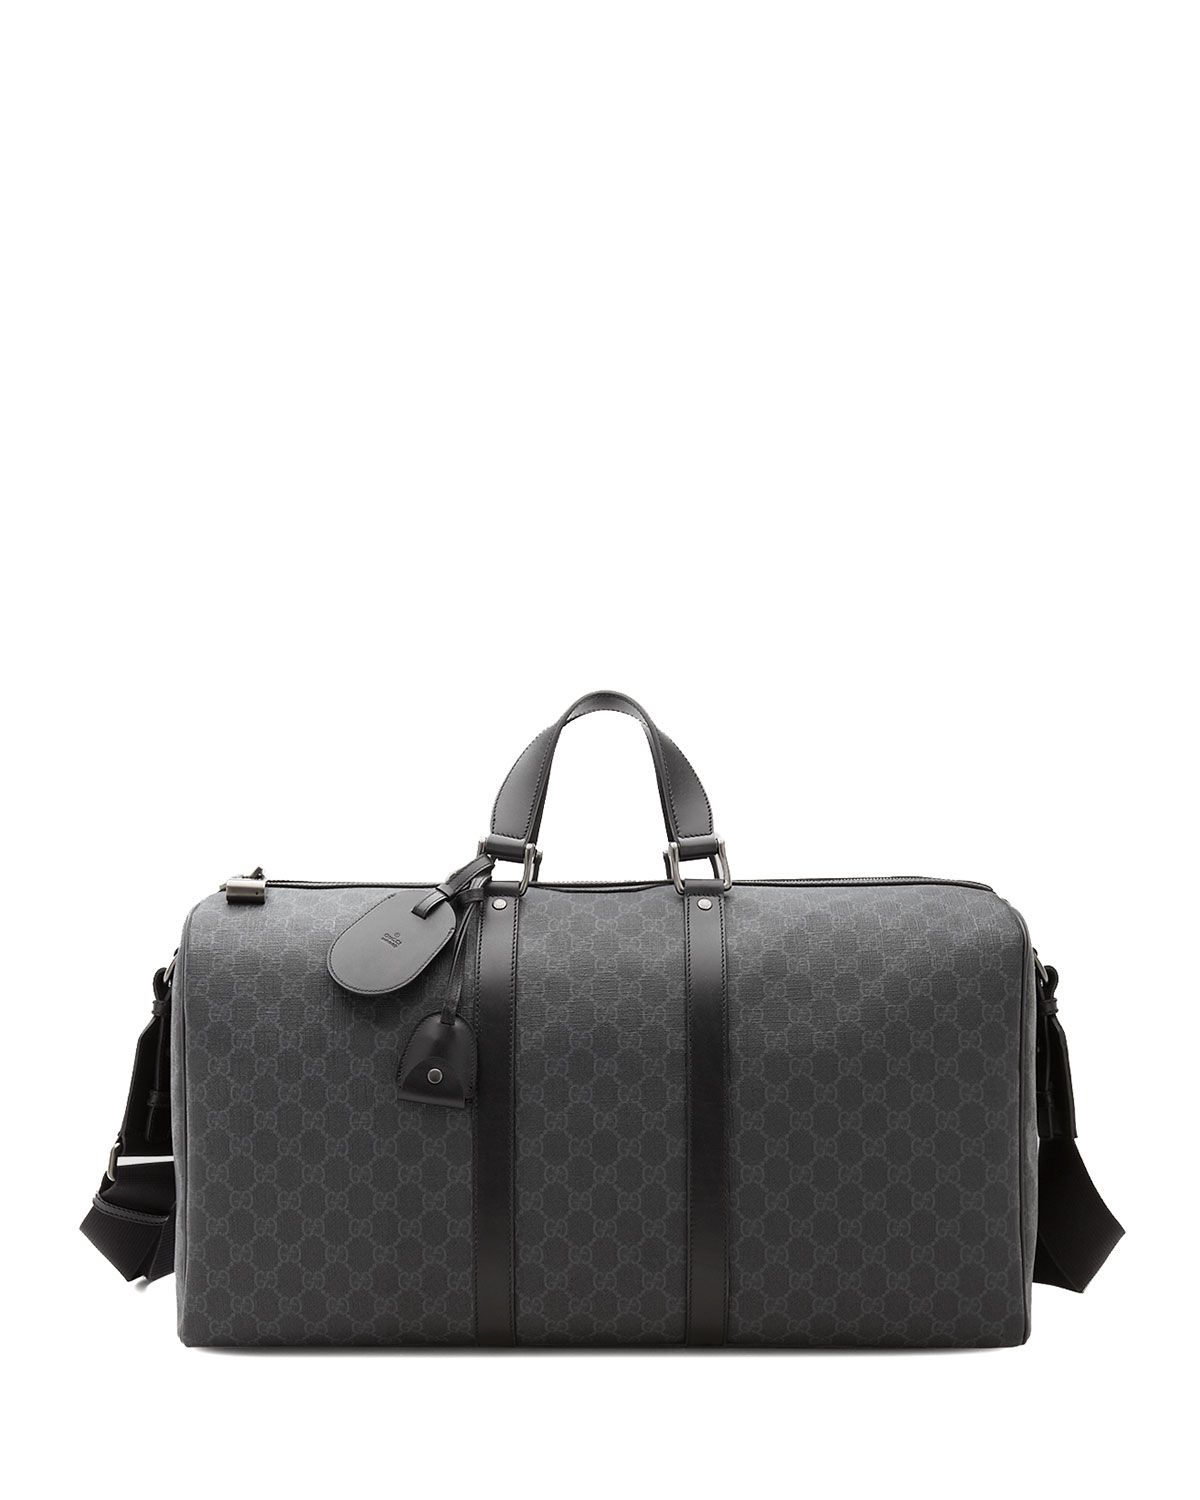 d7a71e970962cf GG Supreme Canvas Large Carry-On Duffel Bag, Black - Gucci ...